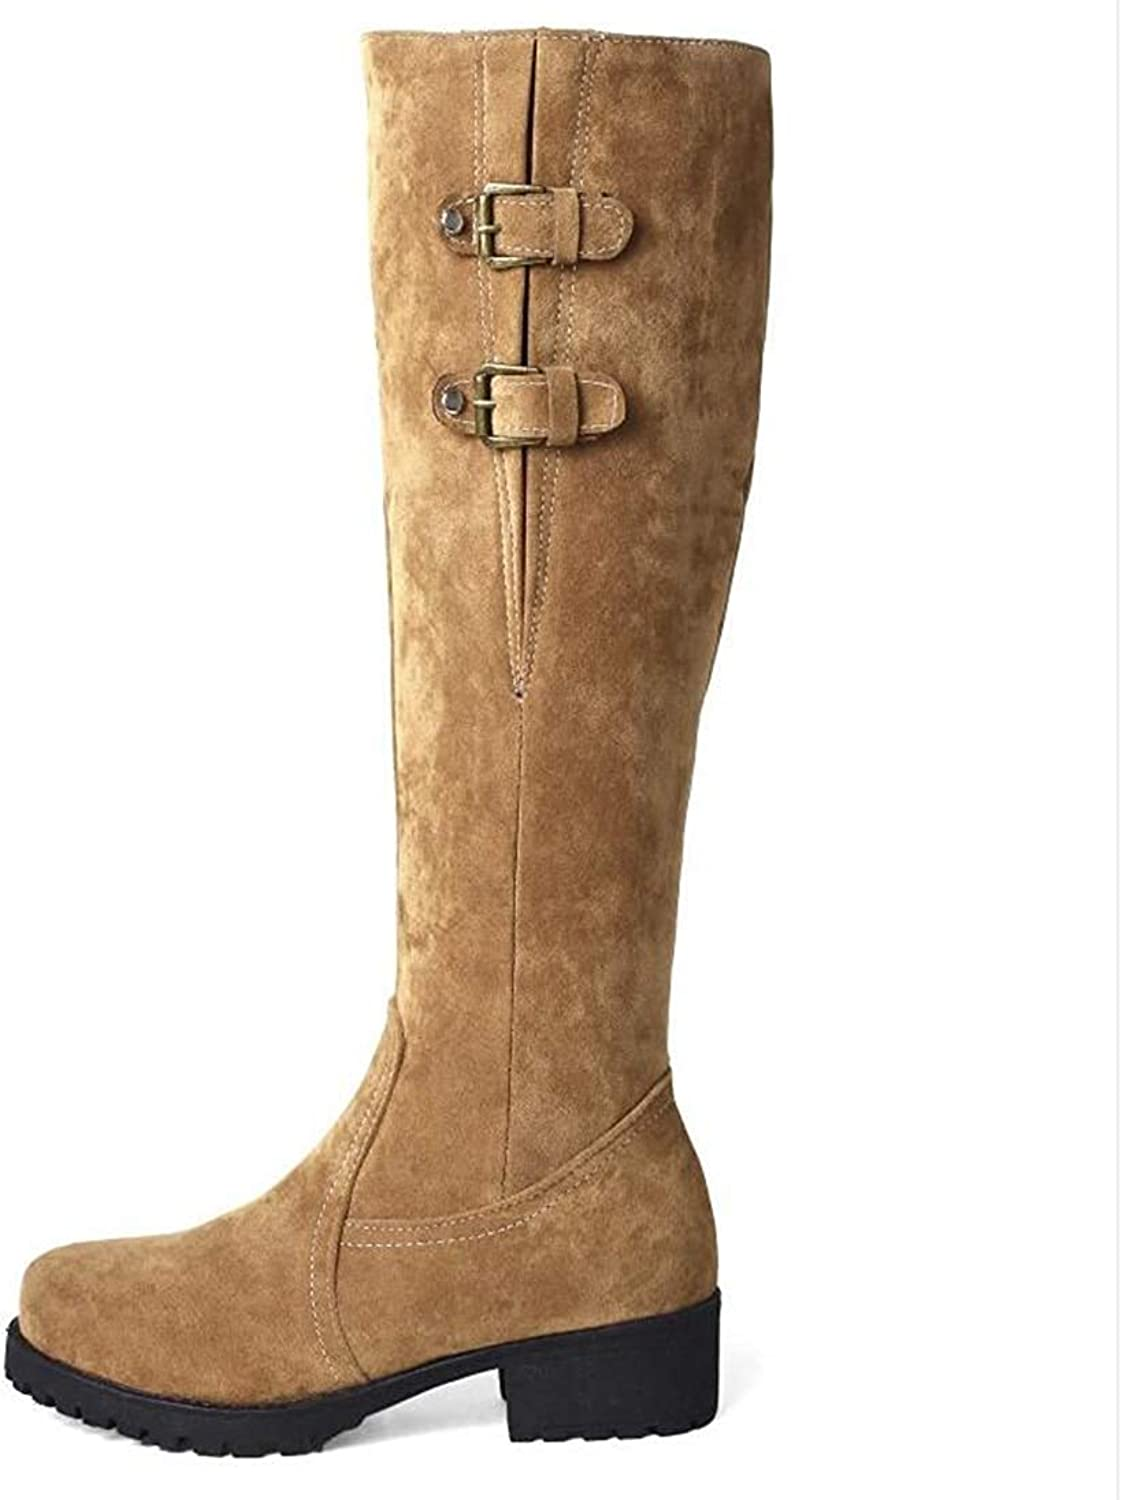 Webb Perkin Women Low Heel Round Toe Female Martin shoes Thick Plush Zipper Riding Boot Lady Knee High Boots